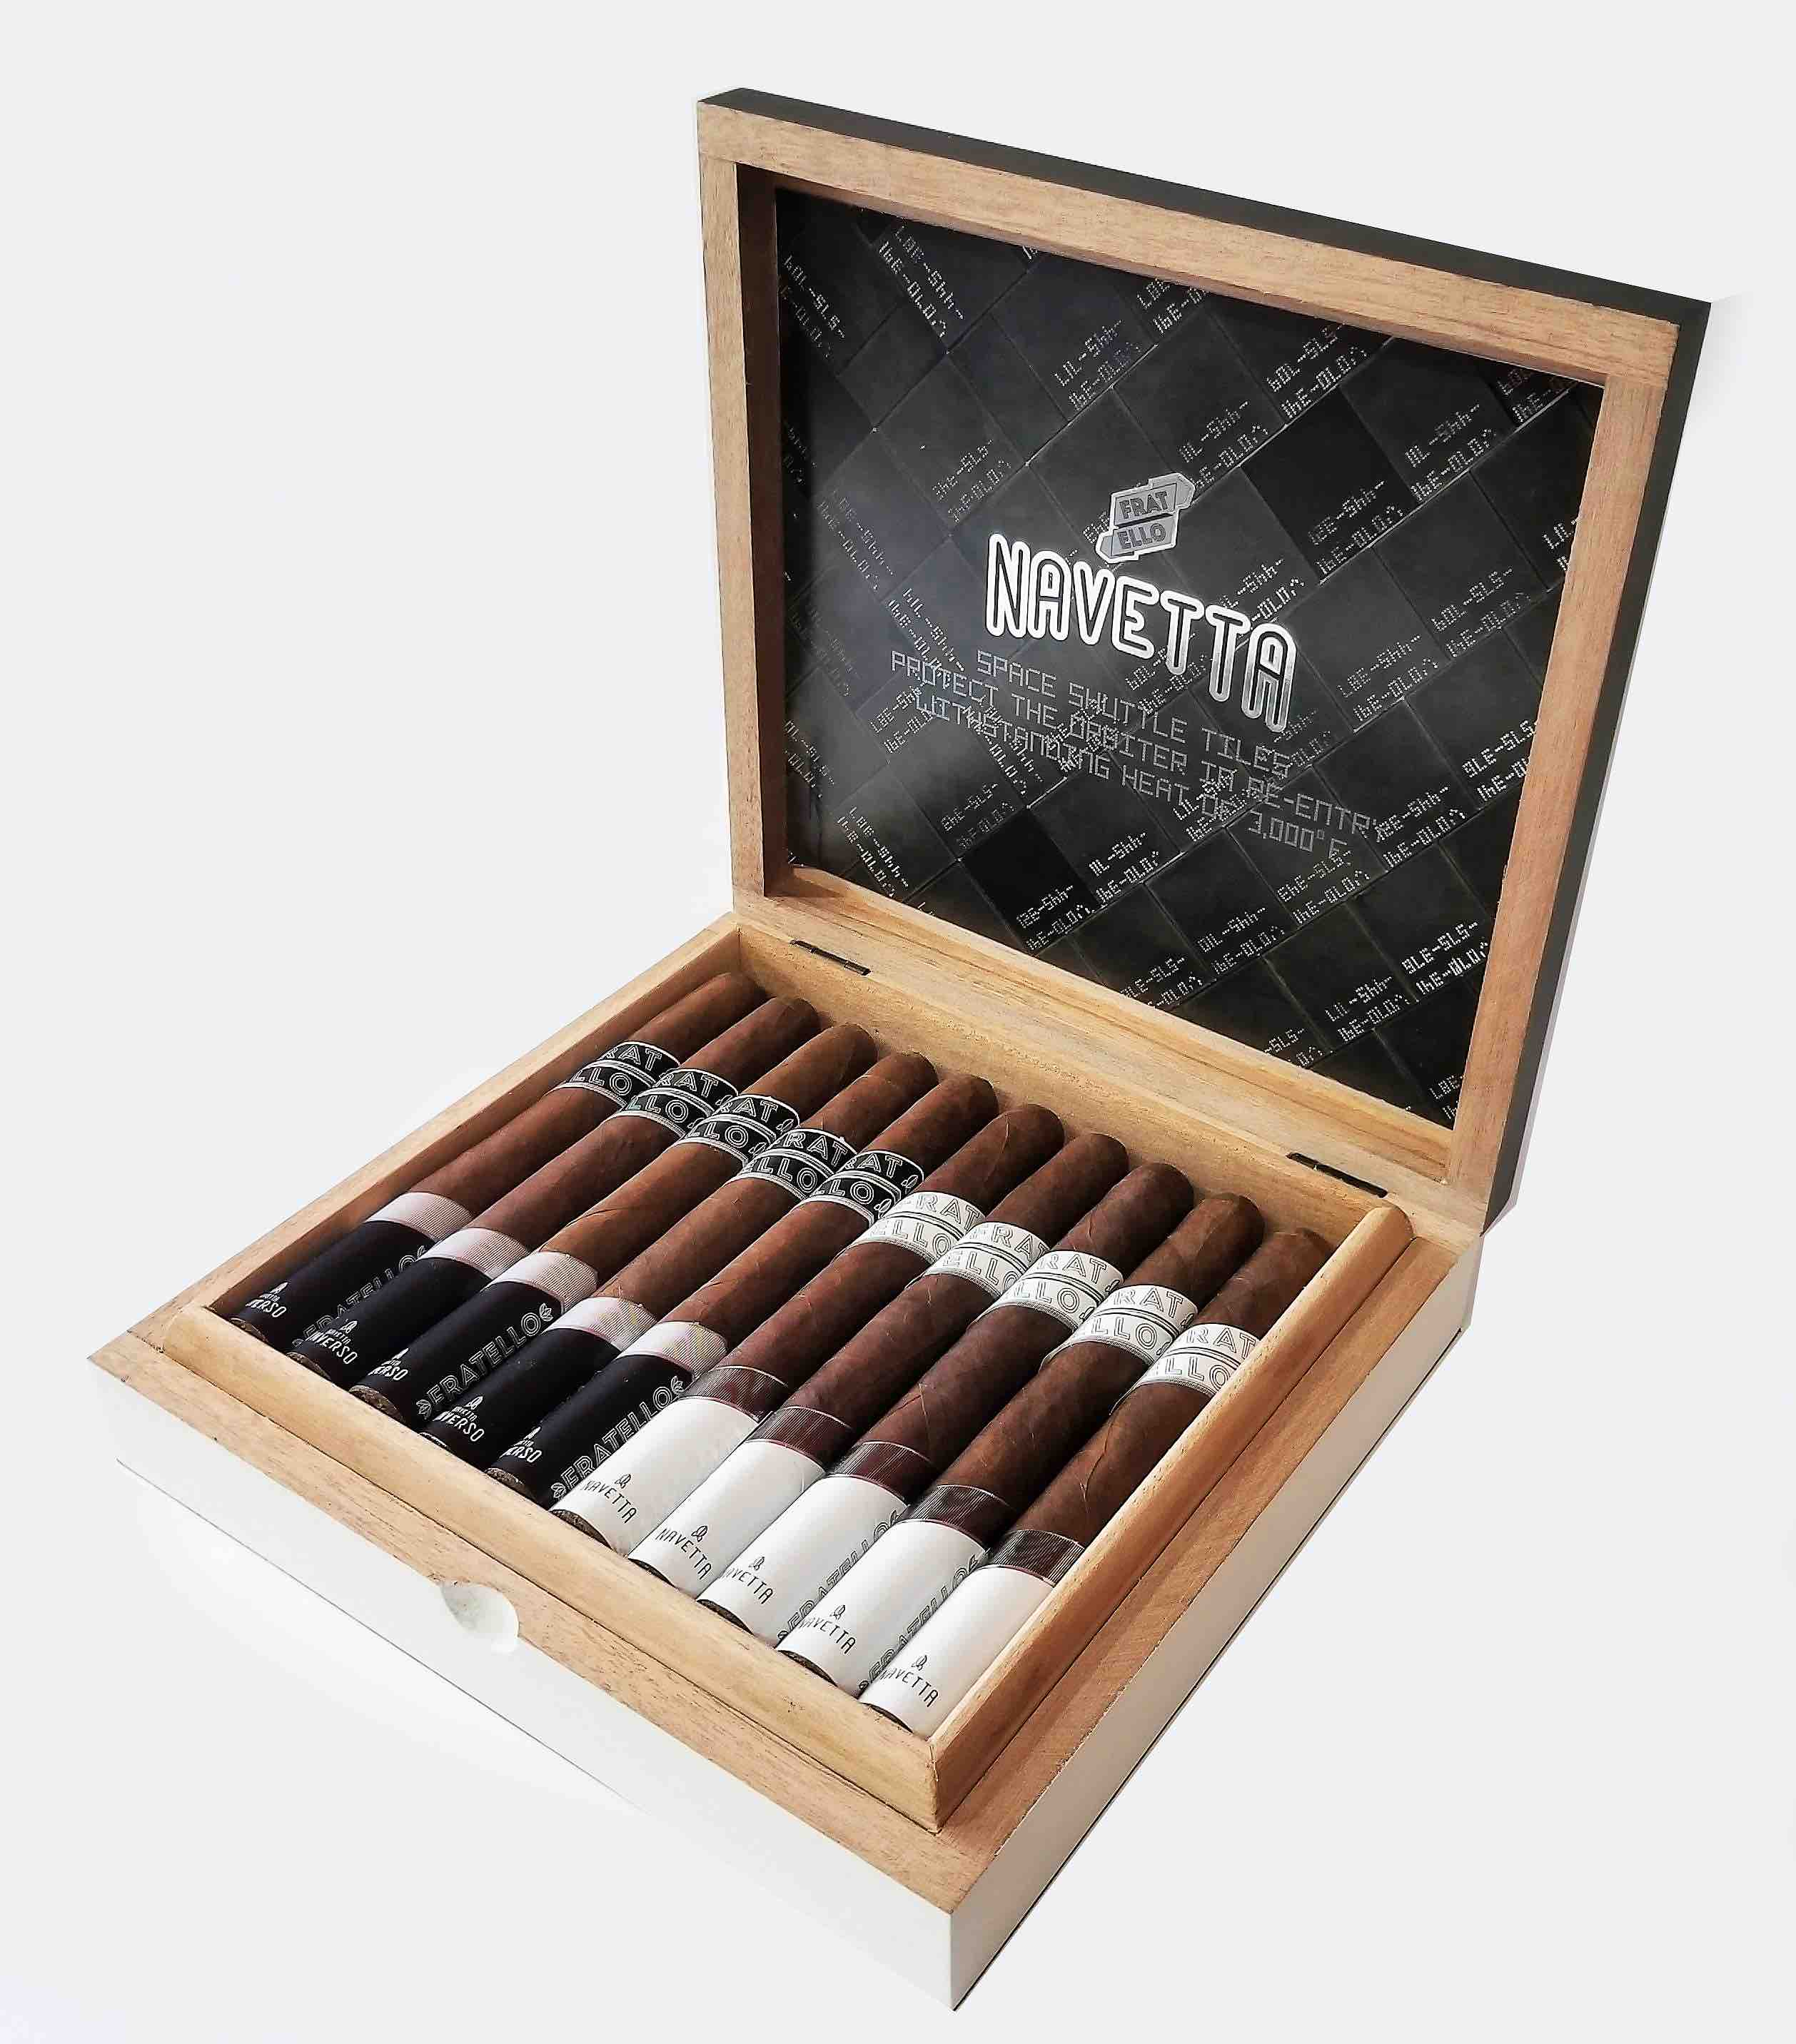 Cigar News: Fratello Navetta and Navetta Inverso Churchill Announced as Store Exclusive